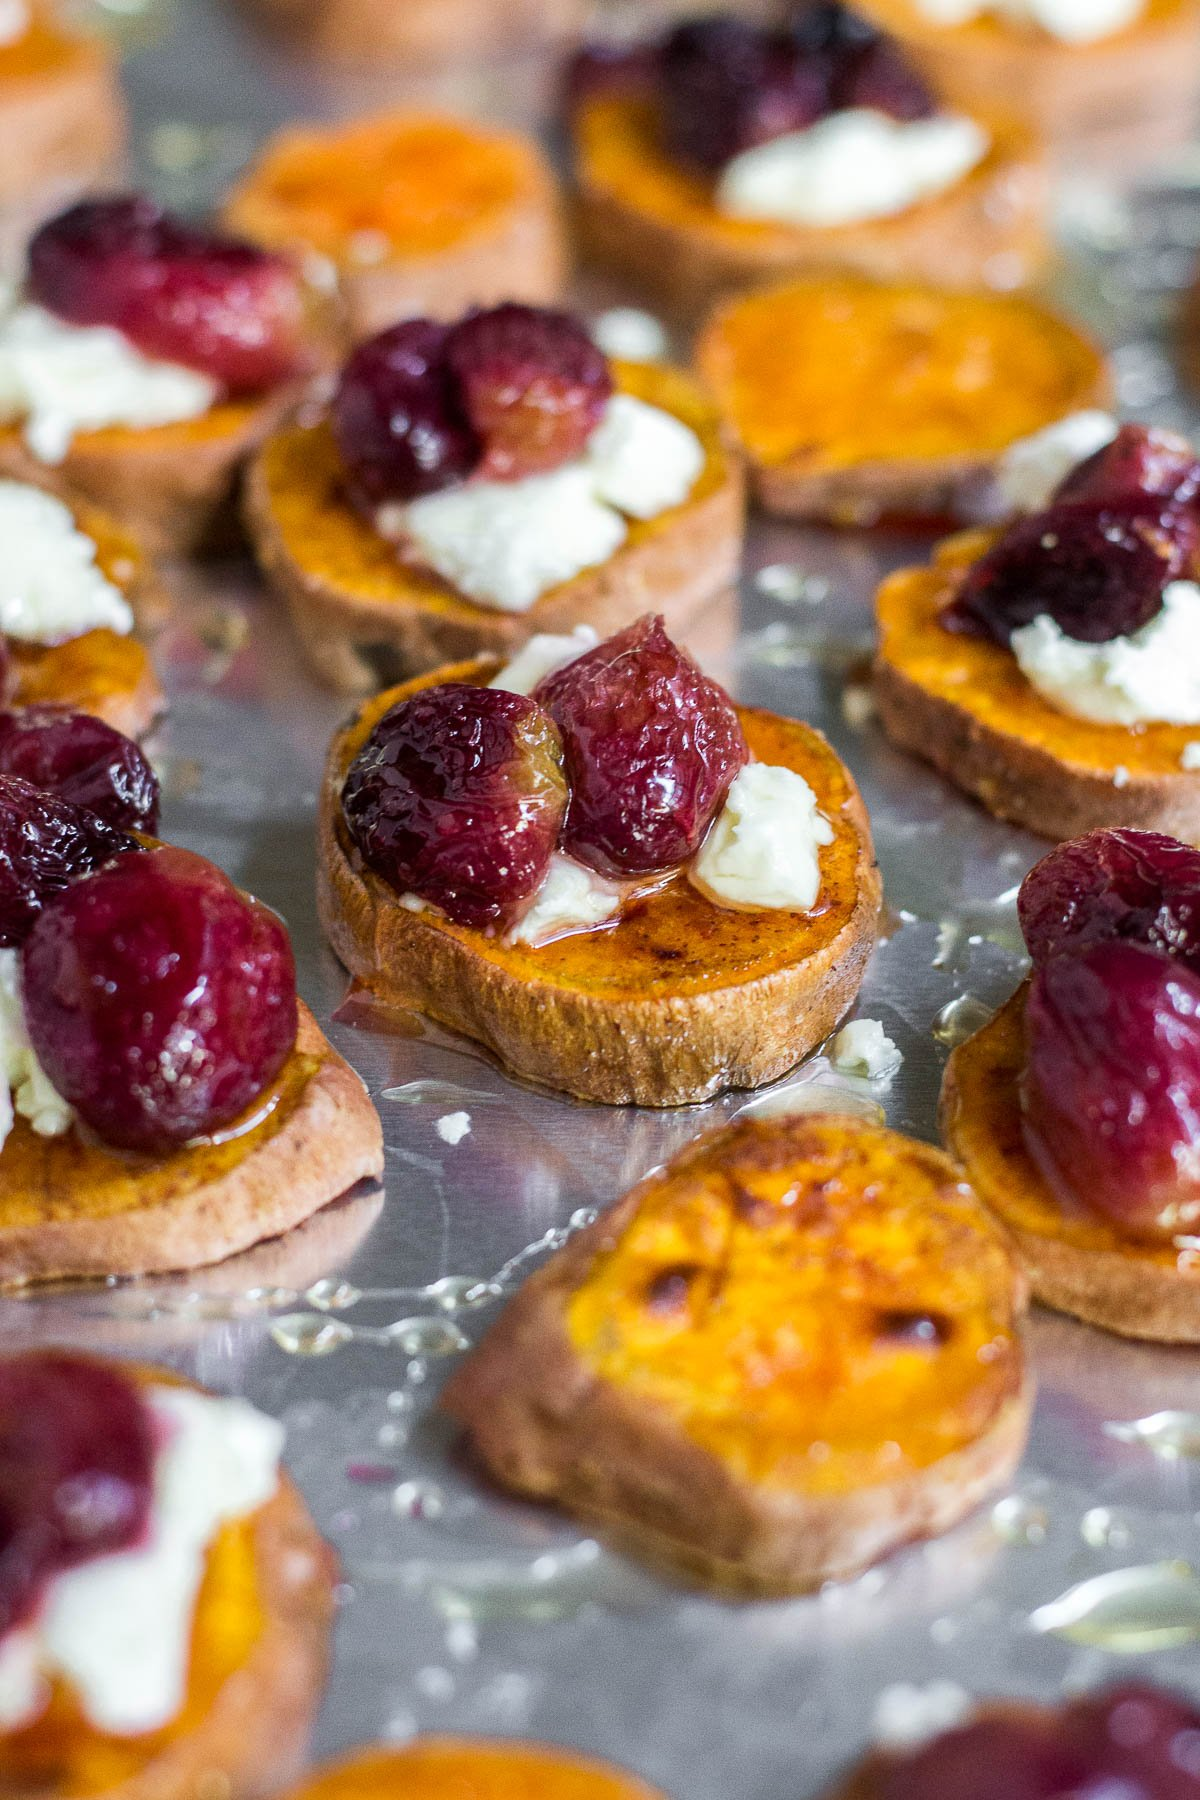 A baking sheet full of roasted sweet potato rounds topped with roasted grapes, crumbled goat cheese and honey.